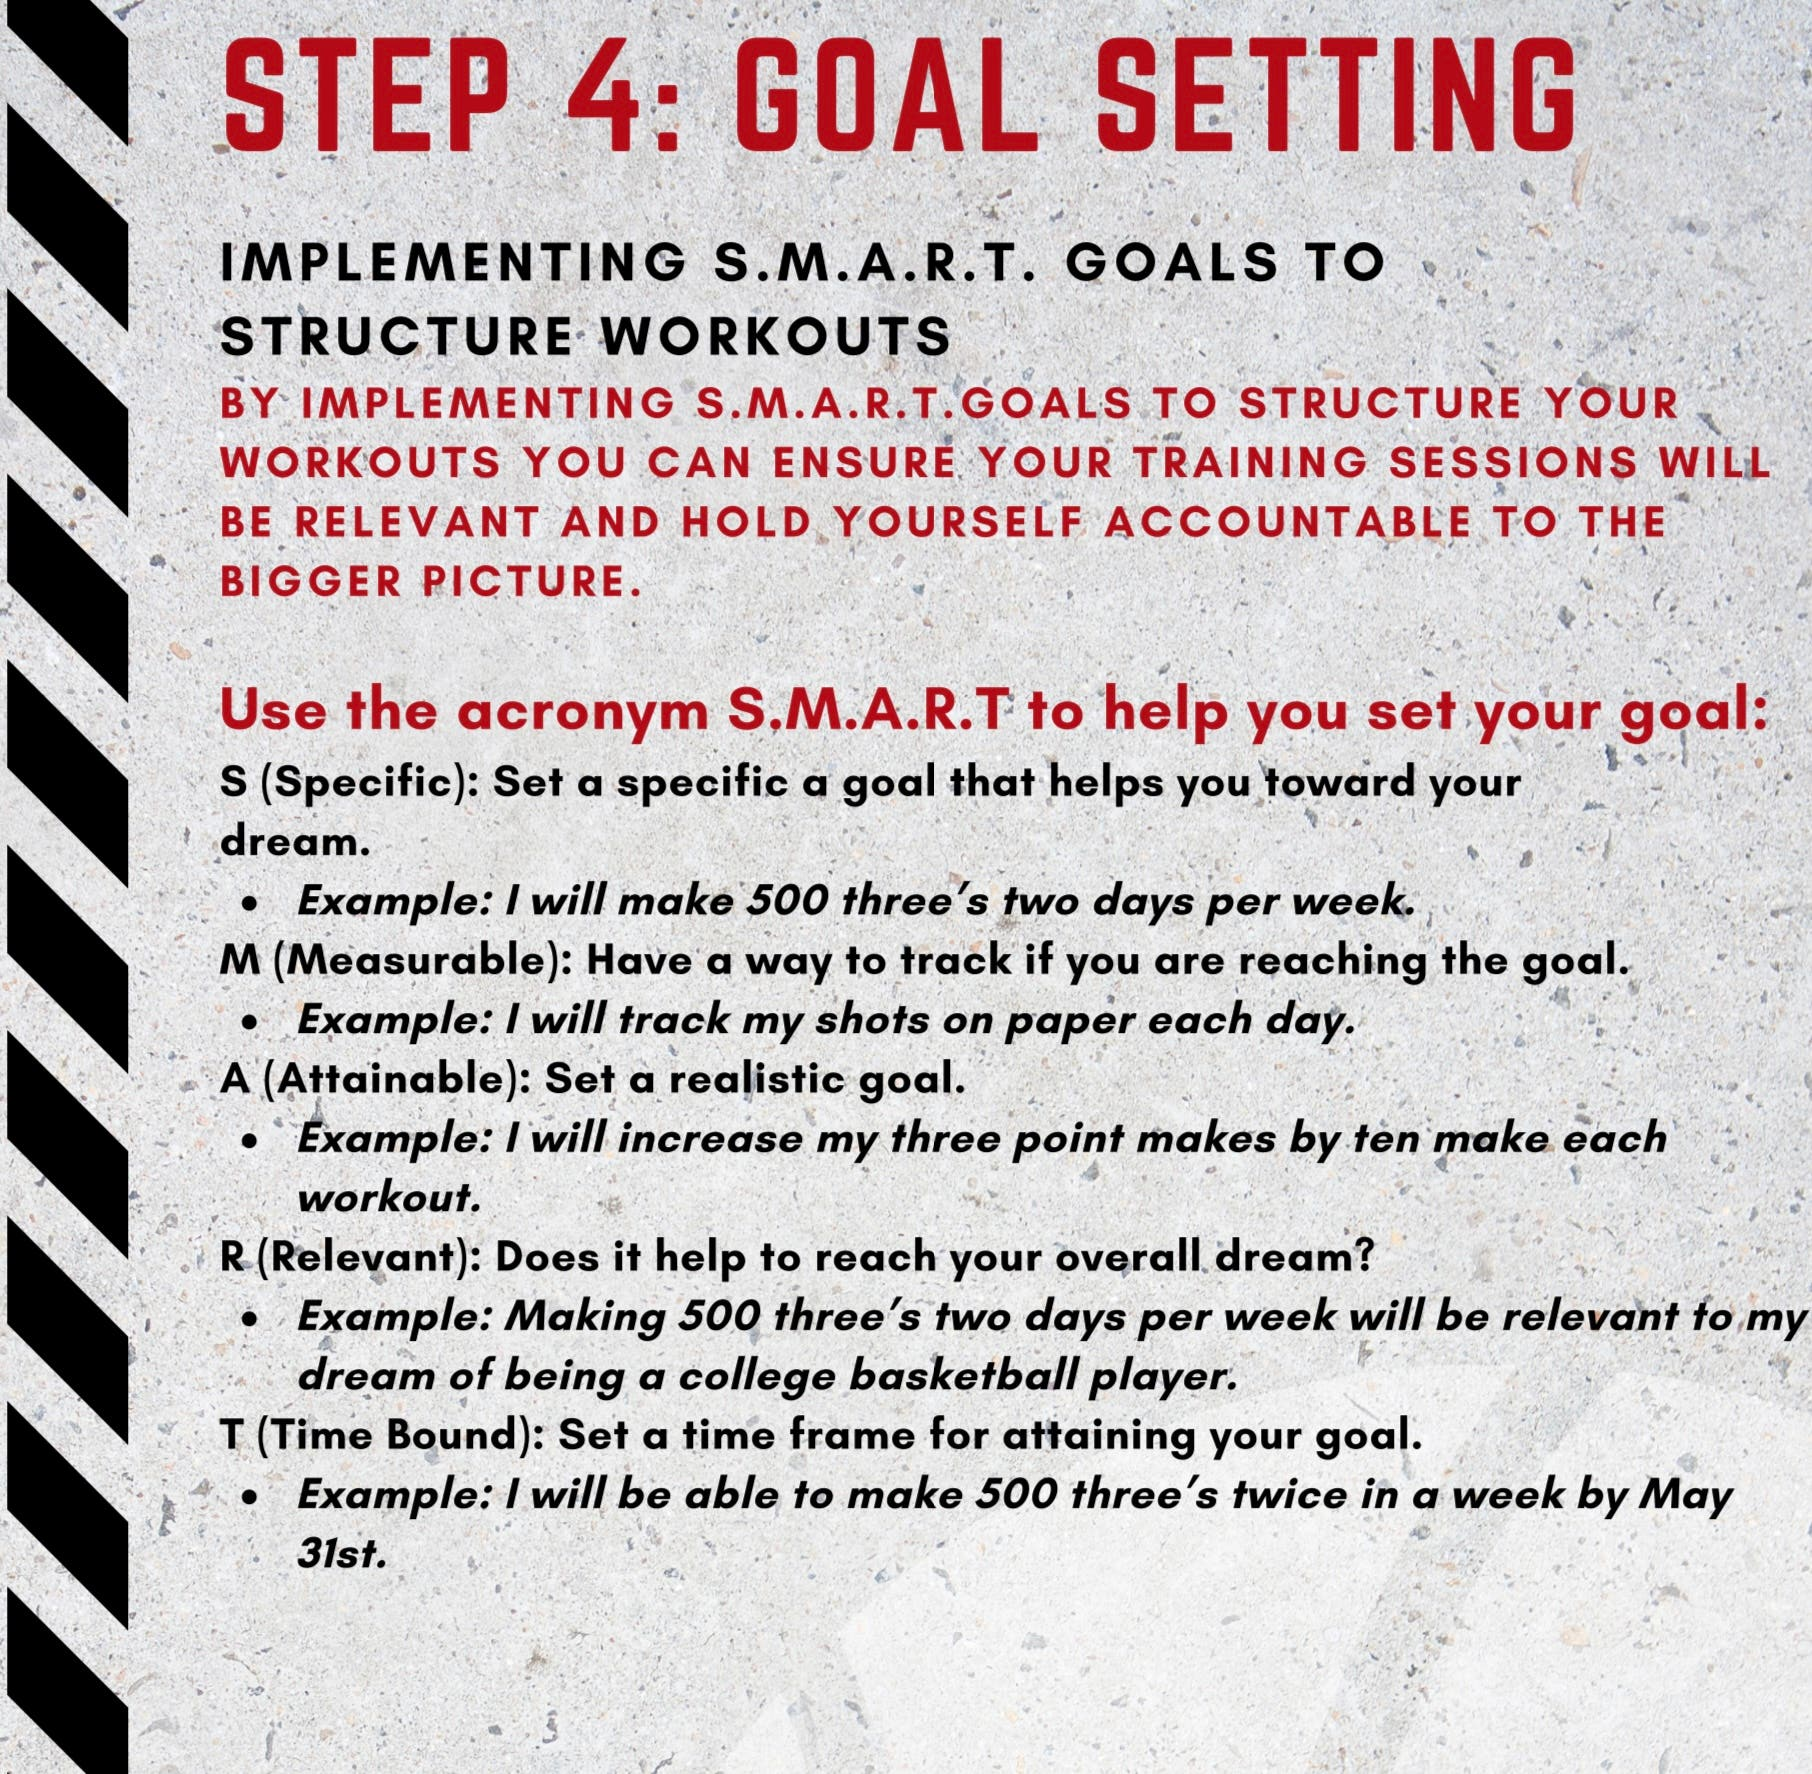 Goal Setting is a Key Step in Basketball and LIFE